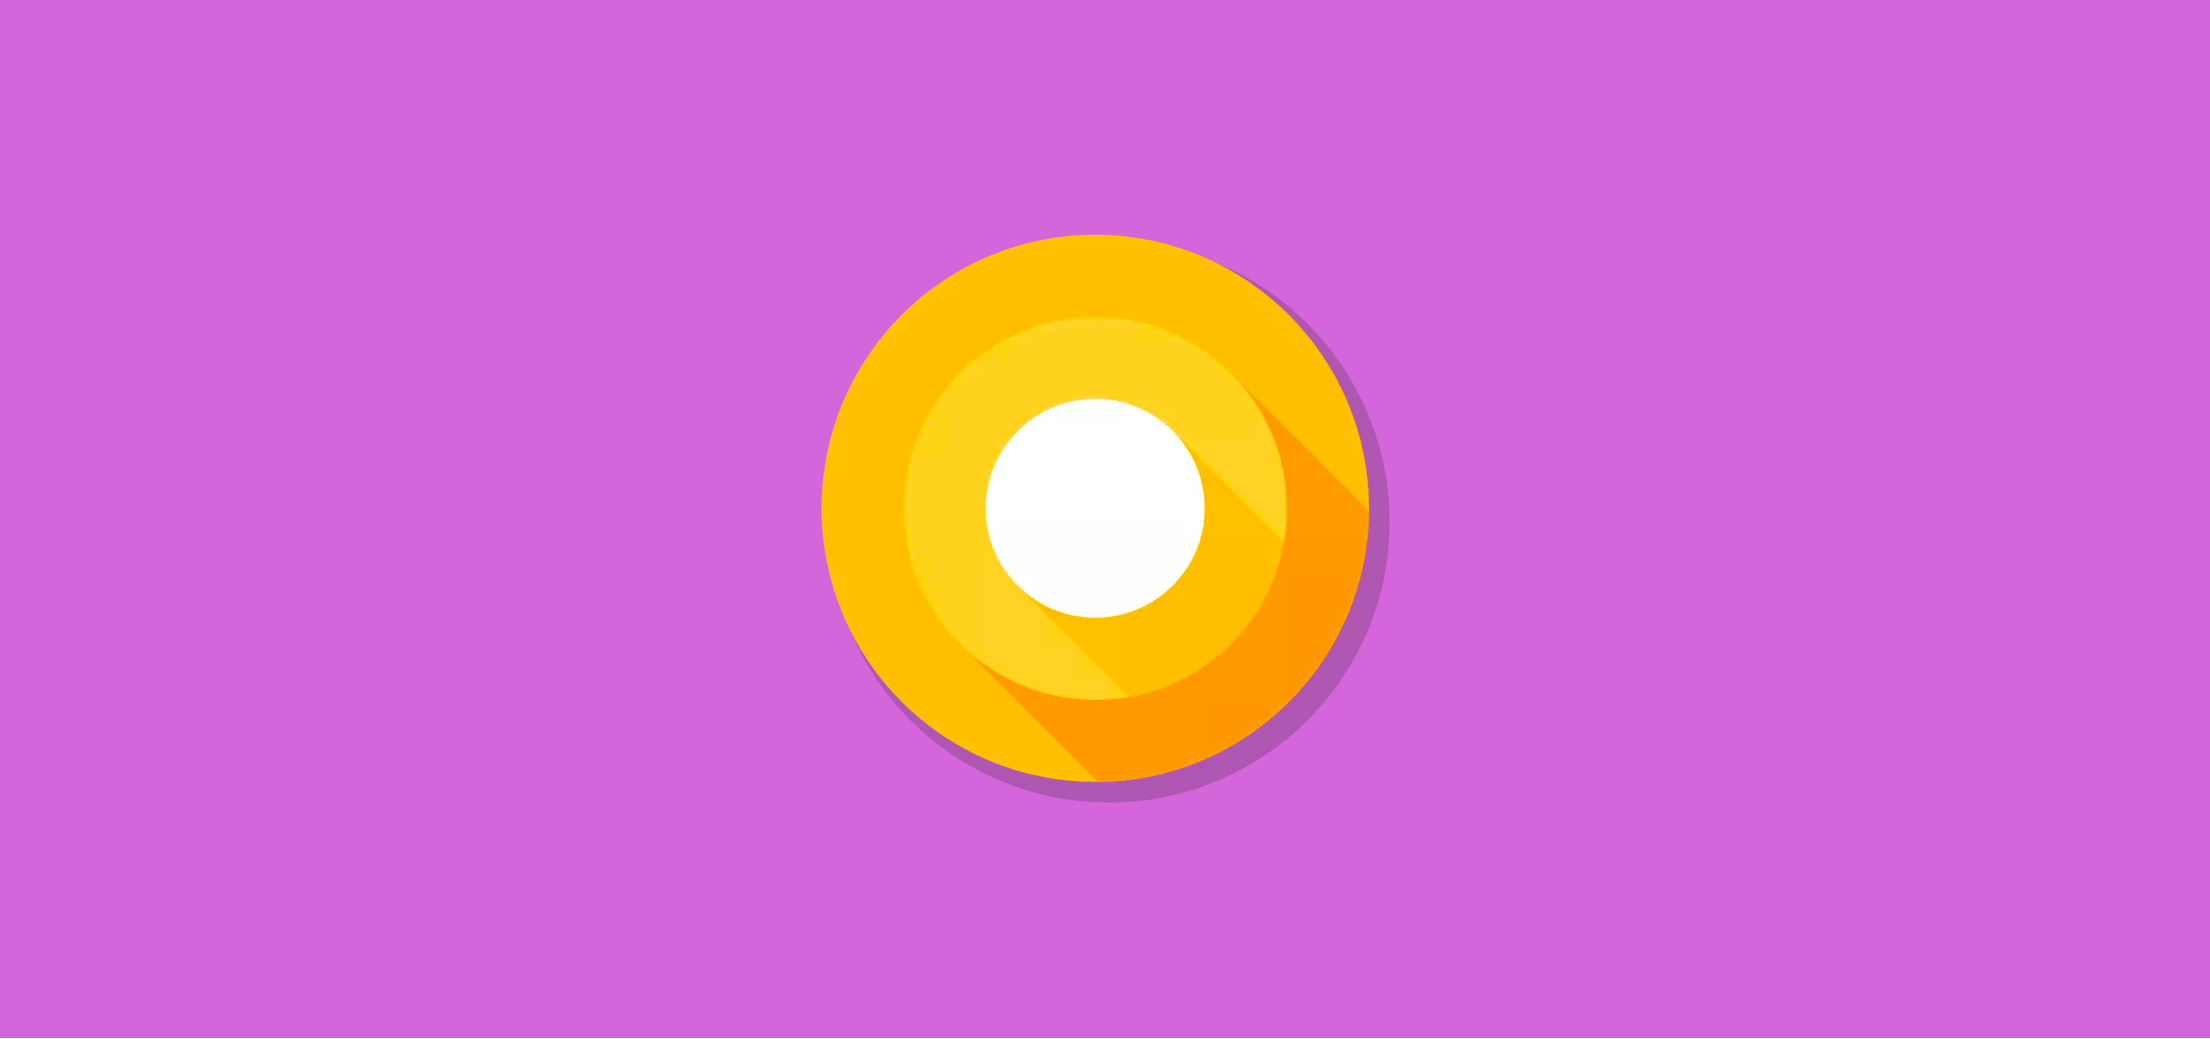 Exploring Android O: Notification Badges - Exploring Android